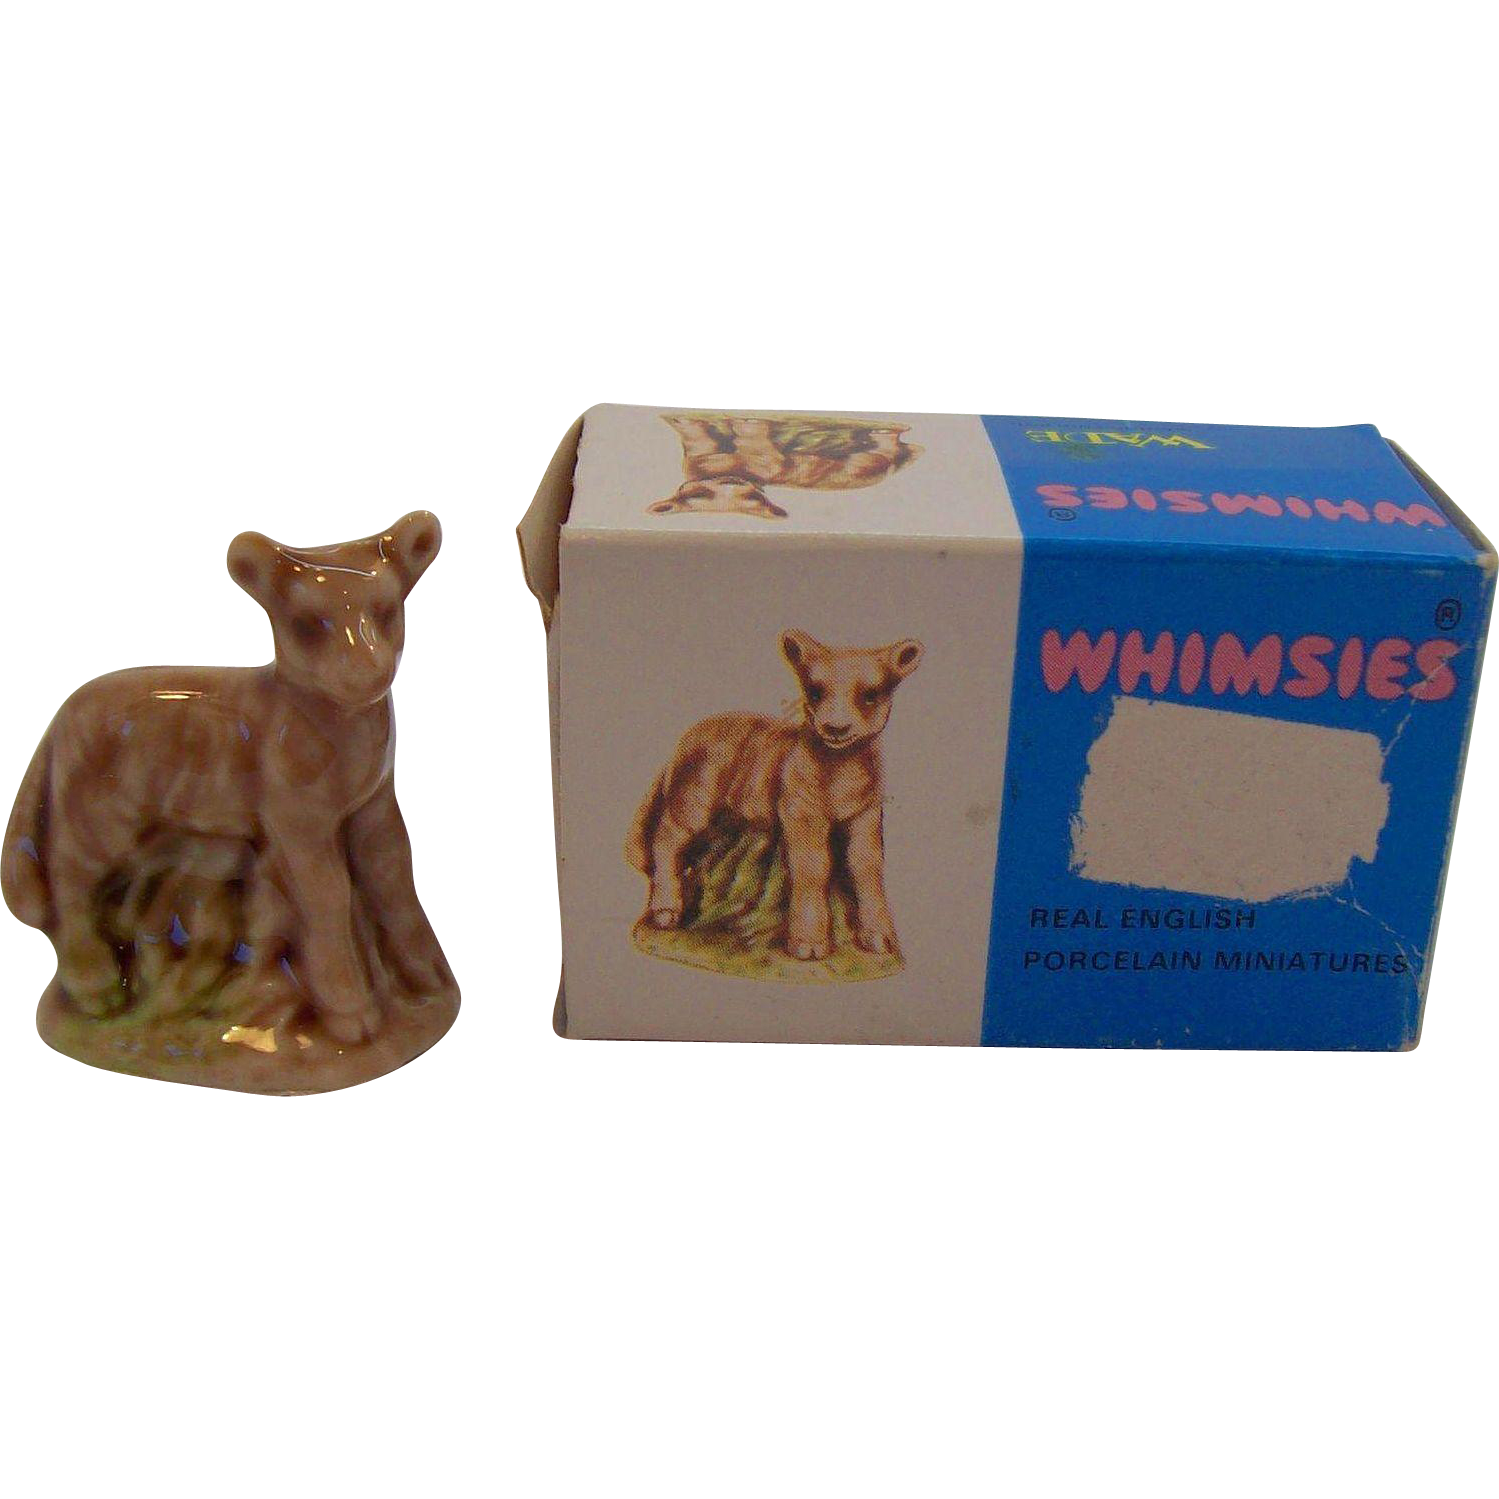 Wade Whimsies Lamb Porcelain Miniature MIB Circa 1970's Box in Good Condition